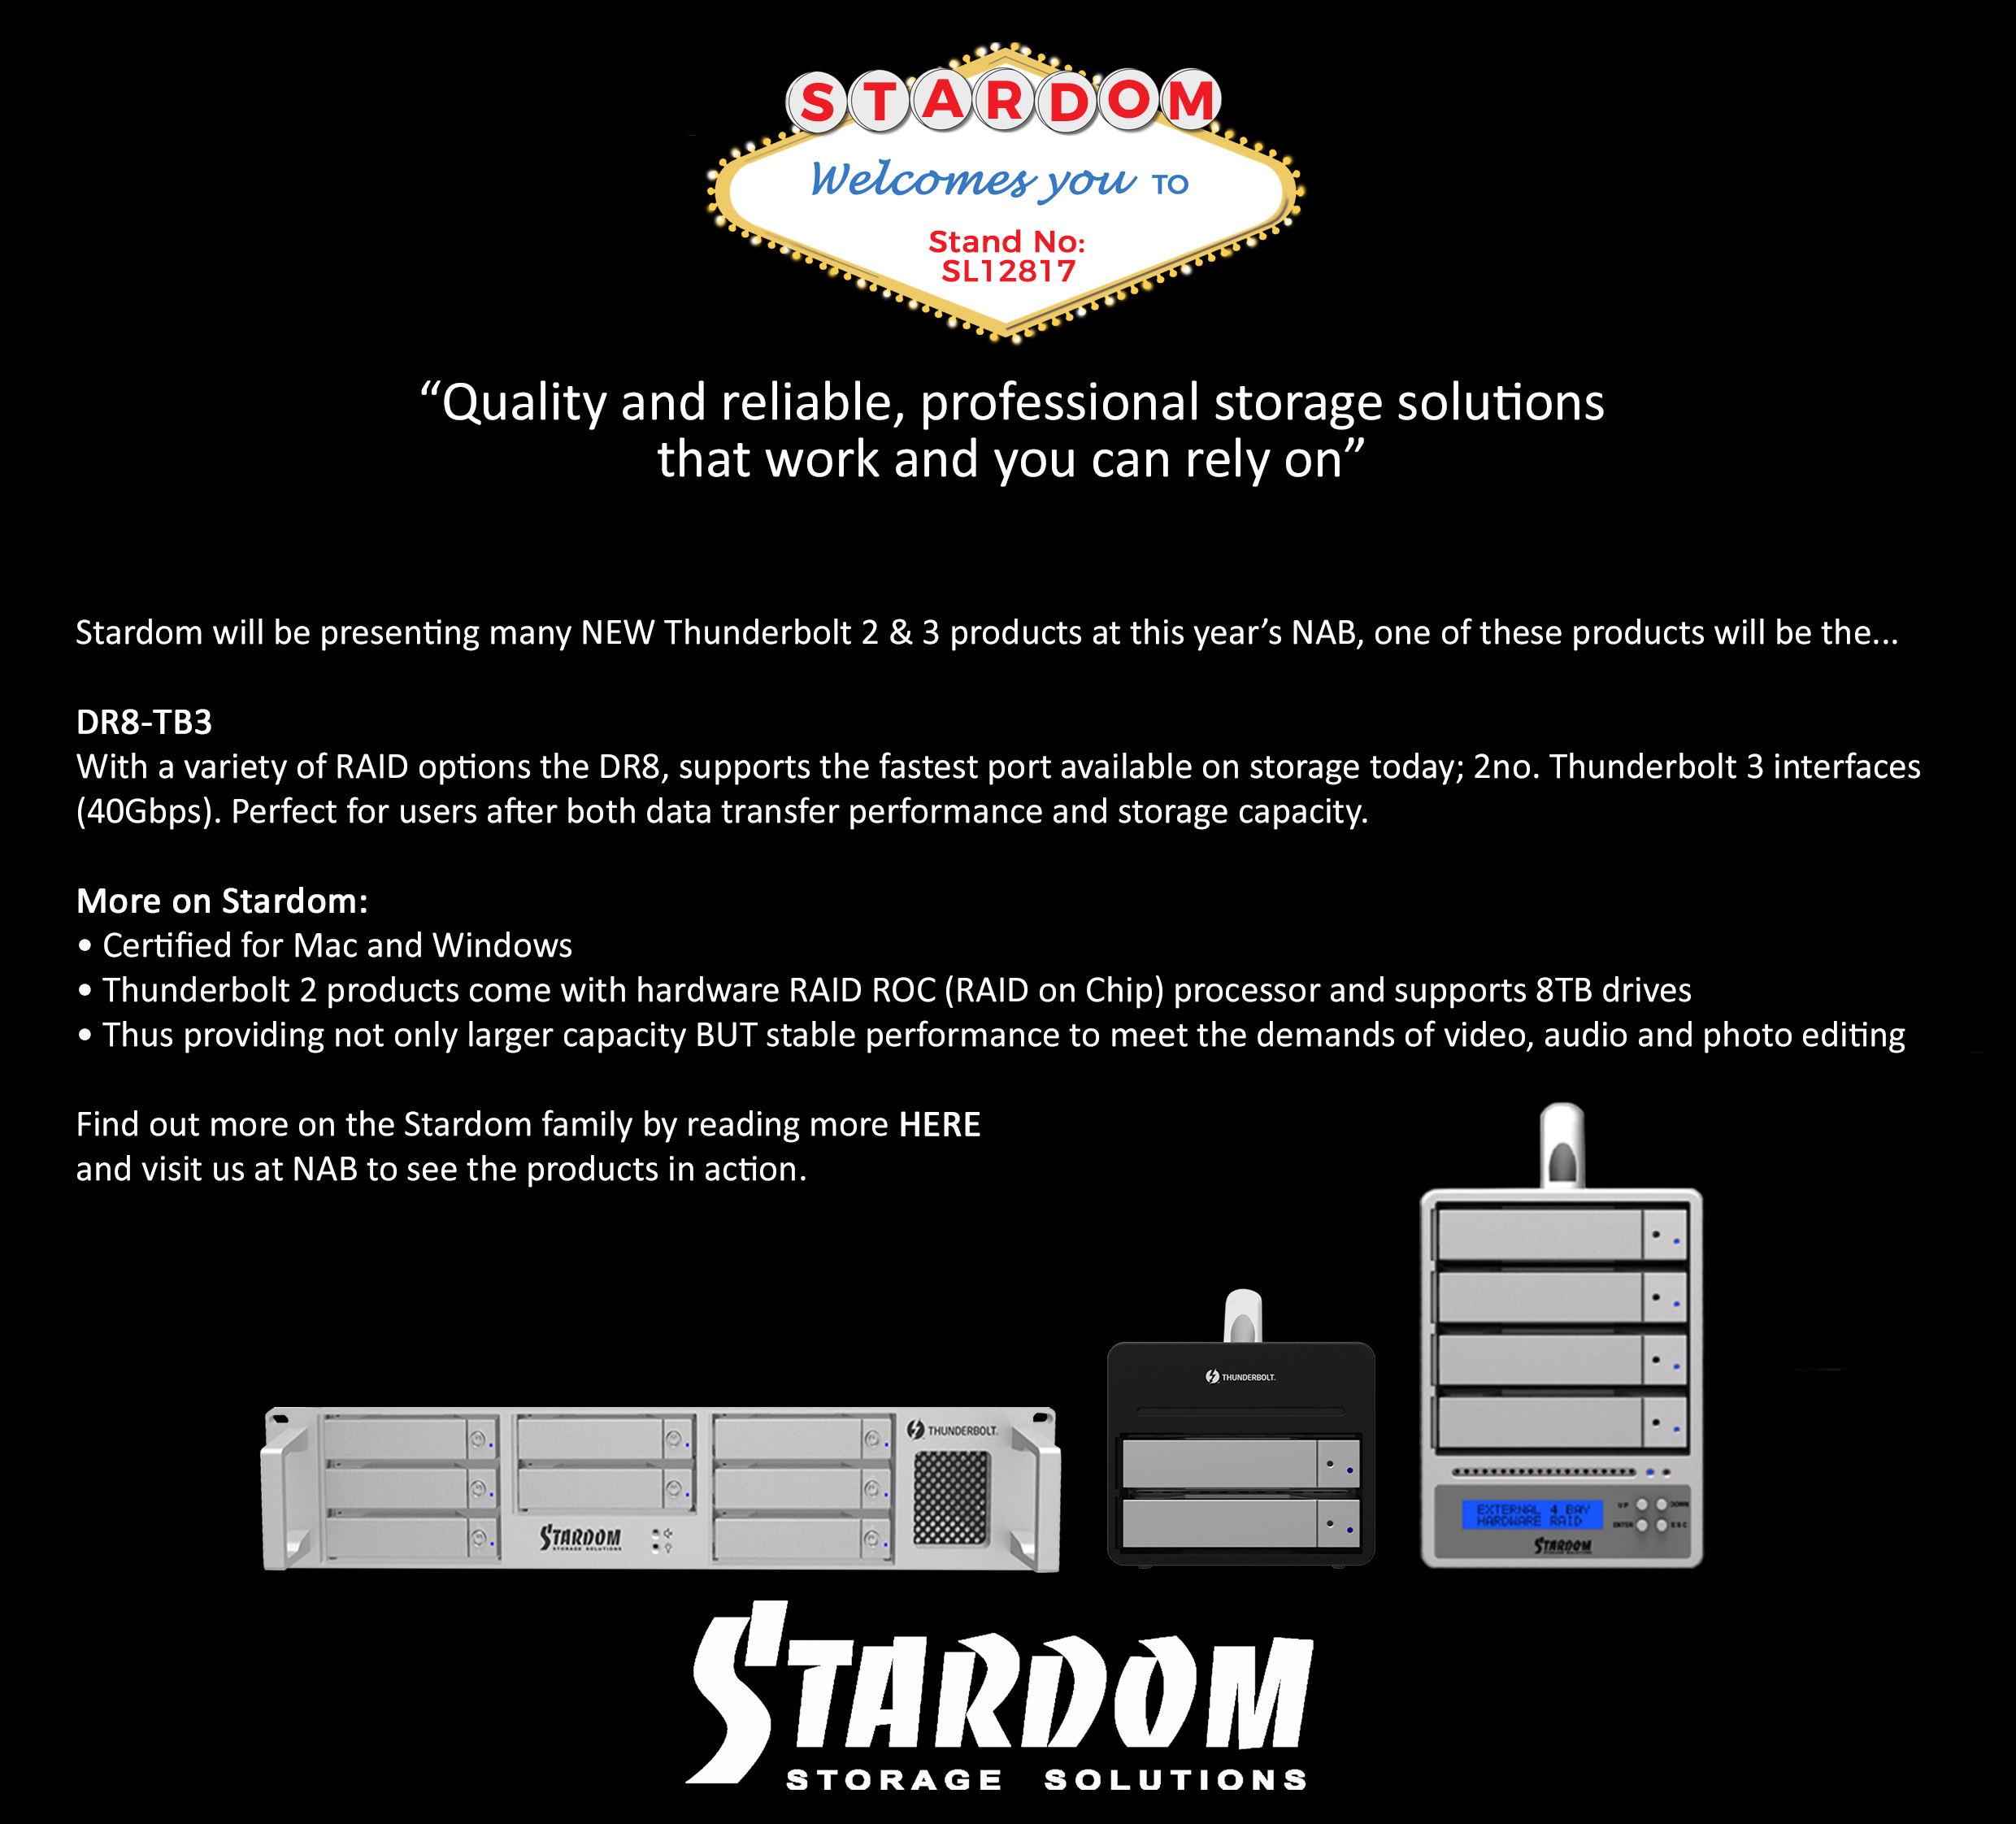 Planning Your Visit For NAB Show 2017? Don't Miss Stardom, Cost Effective RAID Storage